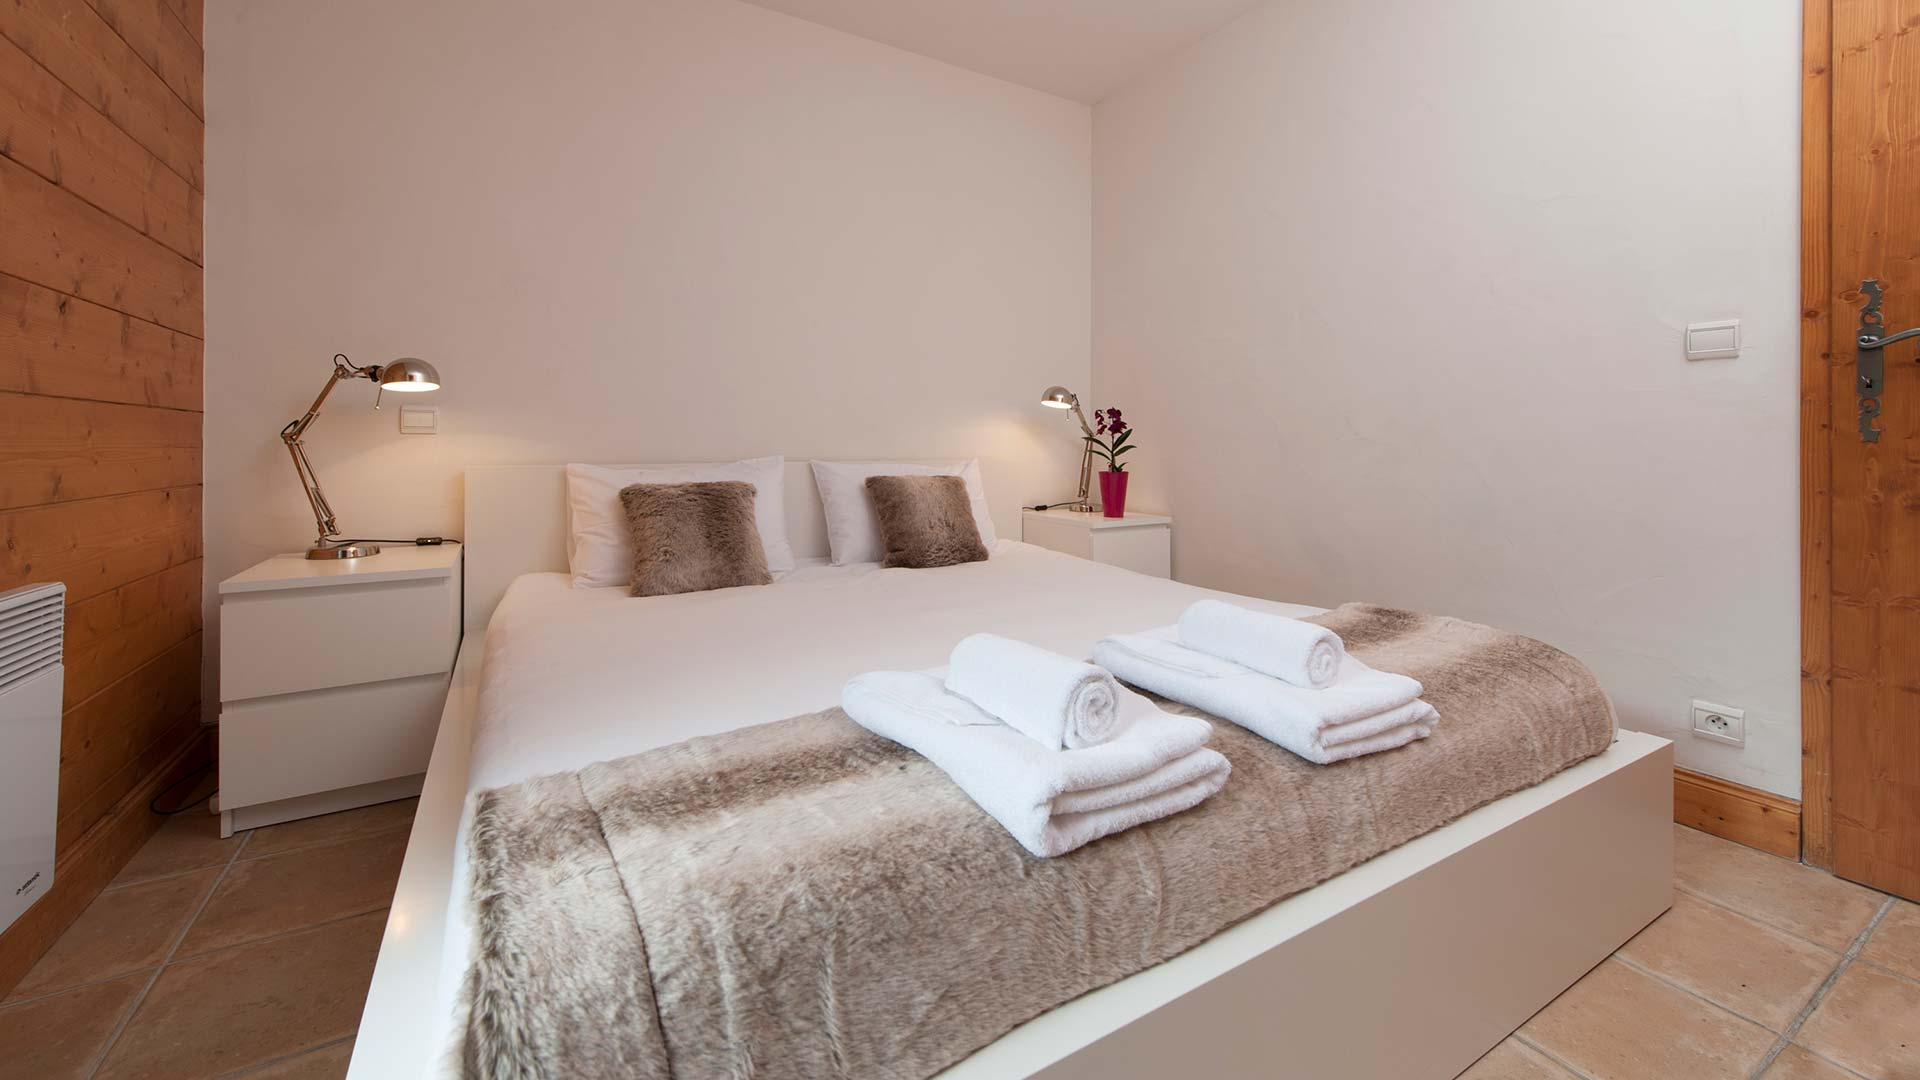 Apartment Agneau bedroom with ensuite bathroom, sleeps 4, self catering.